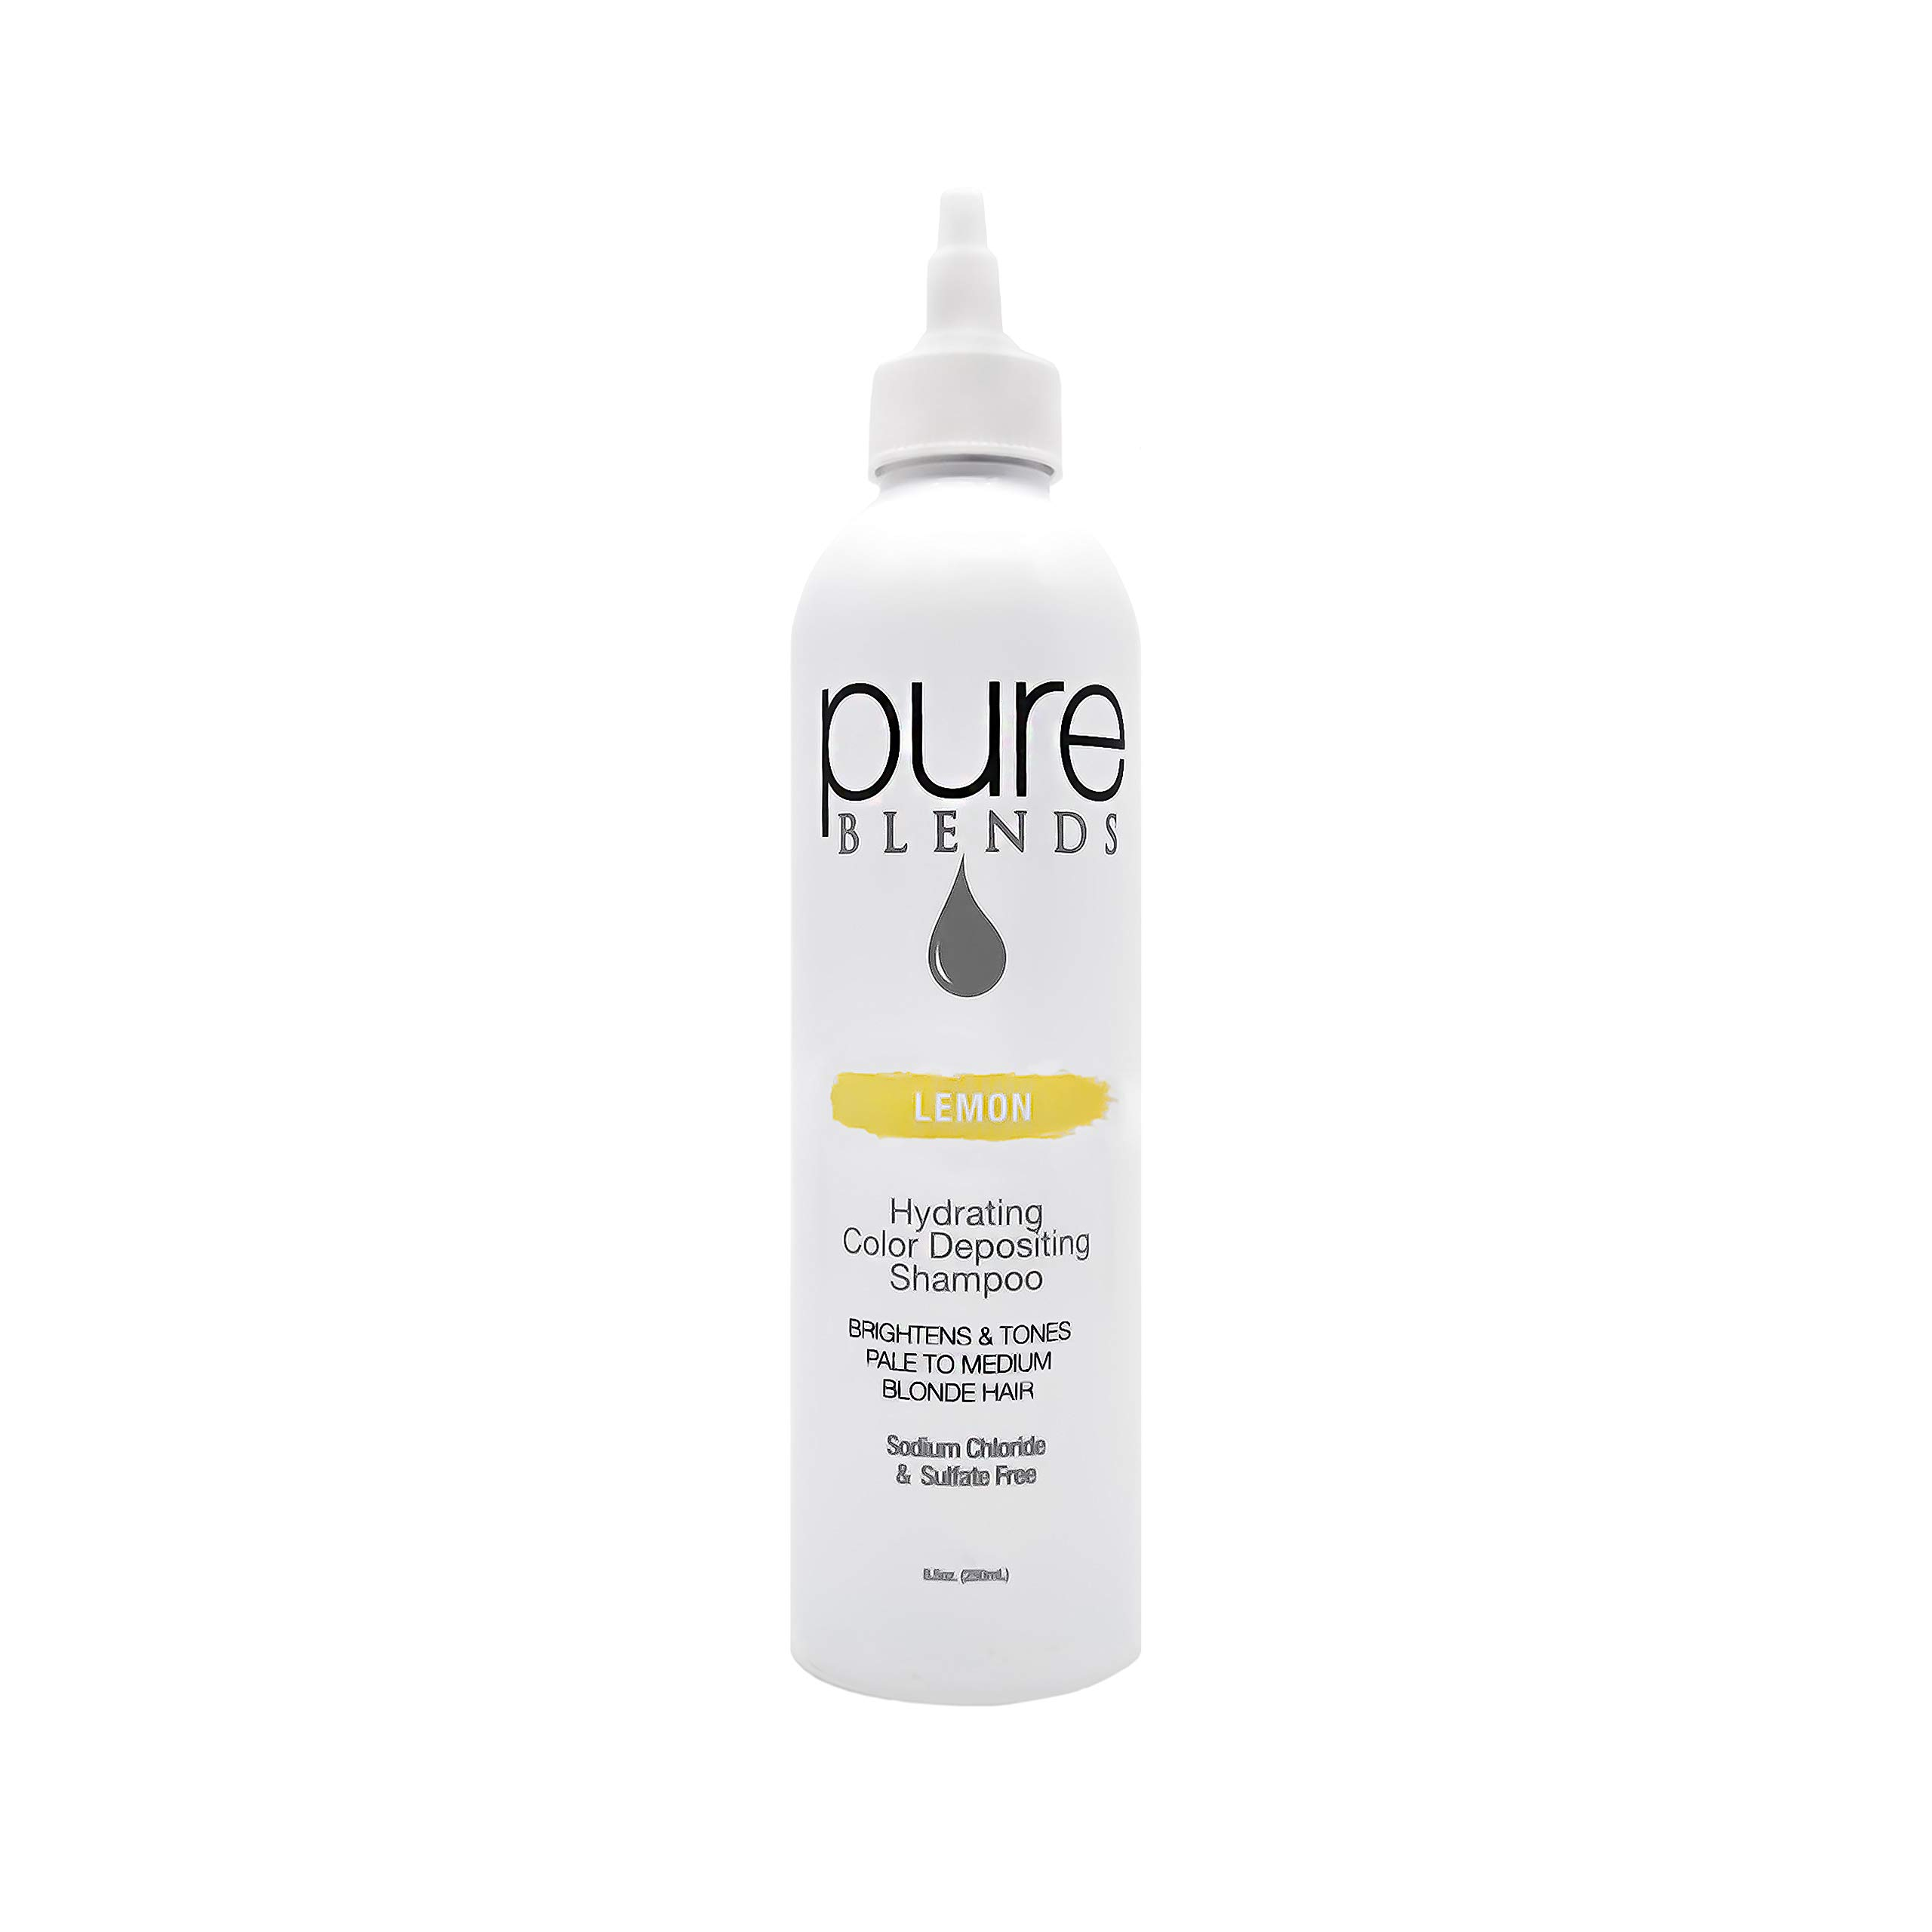 Pure Blends Hydrating Color Depositing Shampoo - Lemon (Pale to Medium Blonde Hair) 8.5 Ounce - Salon Quality by Pure Blends